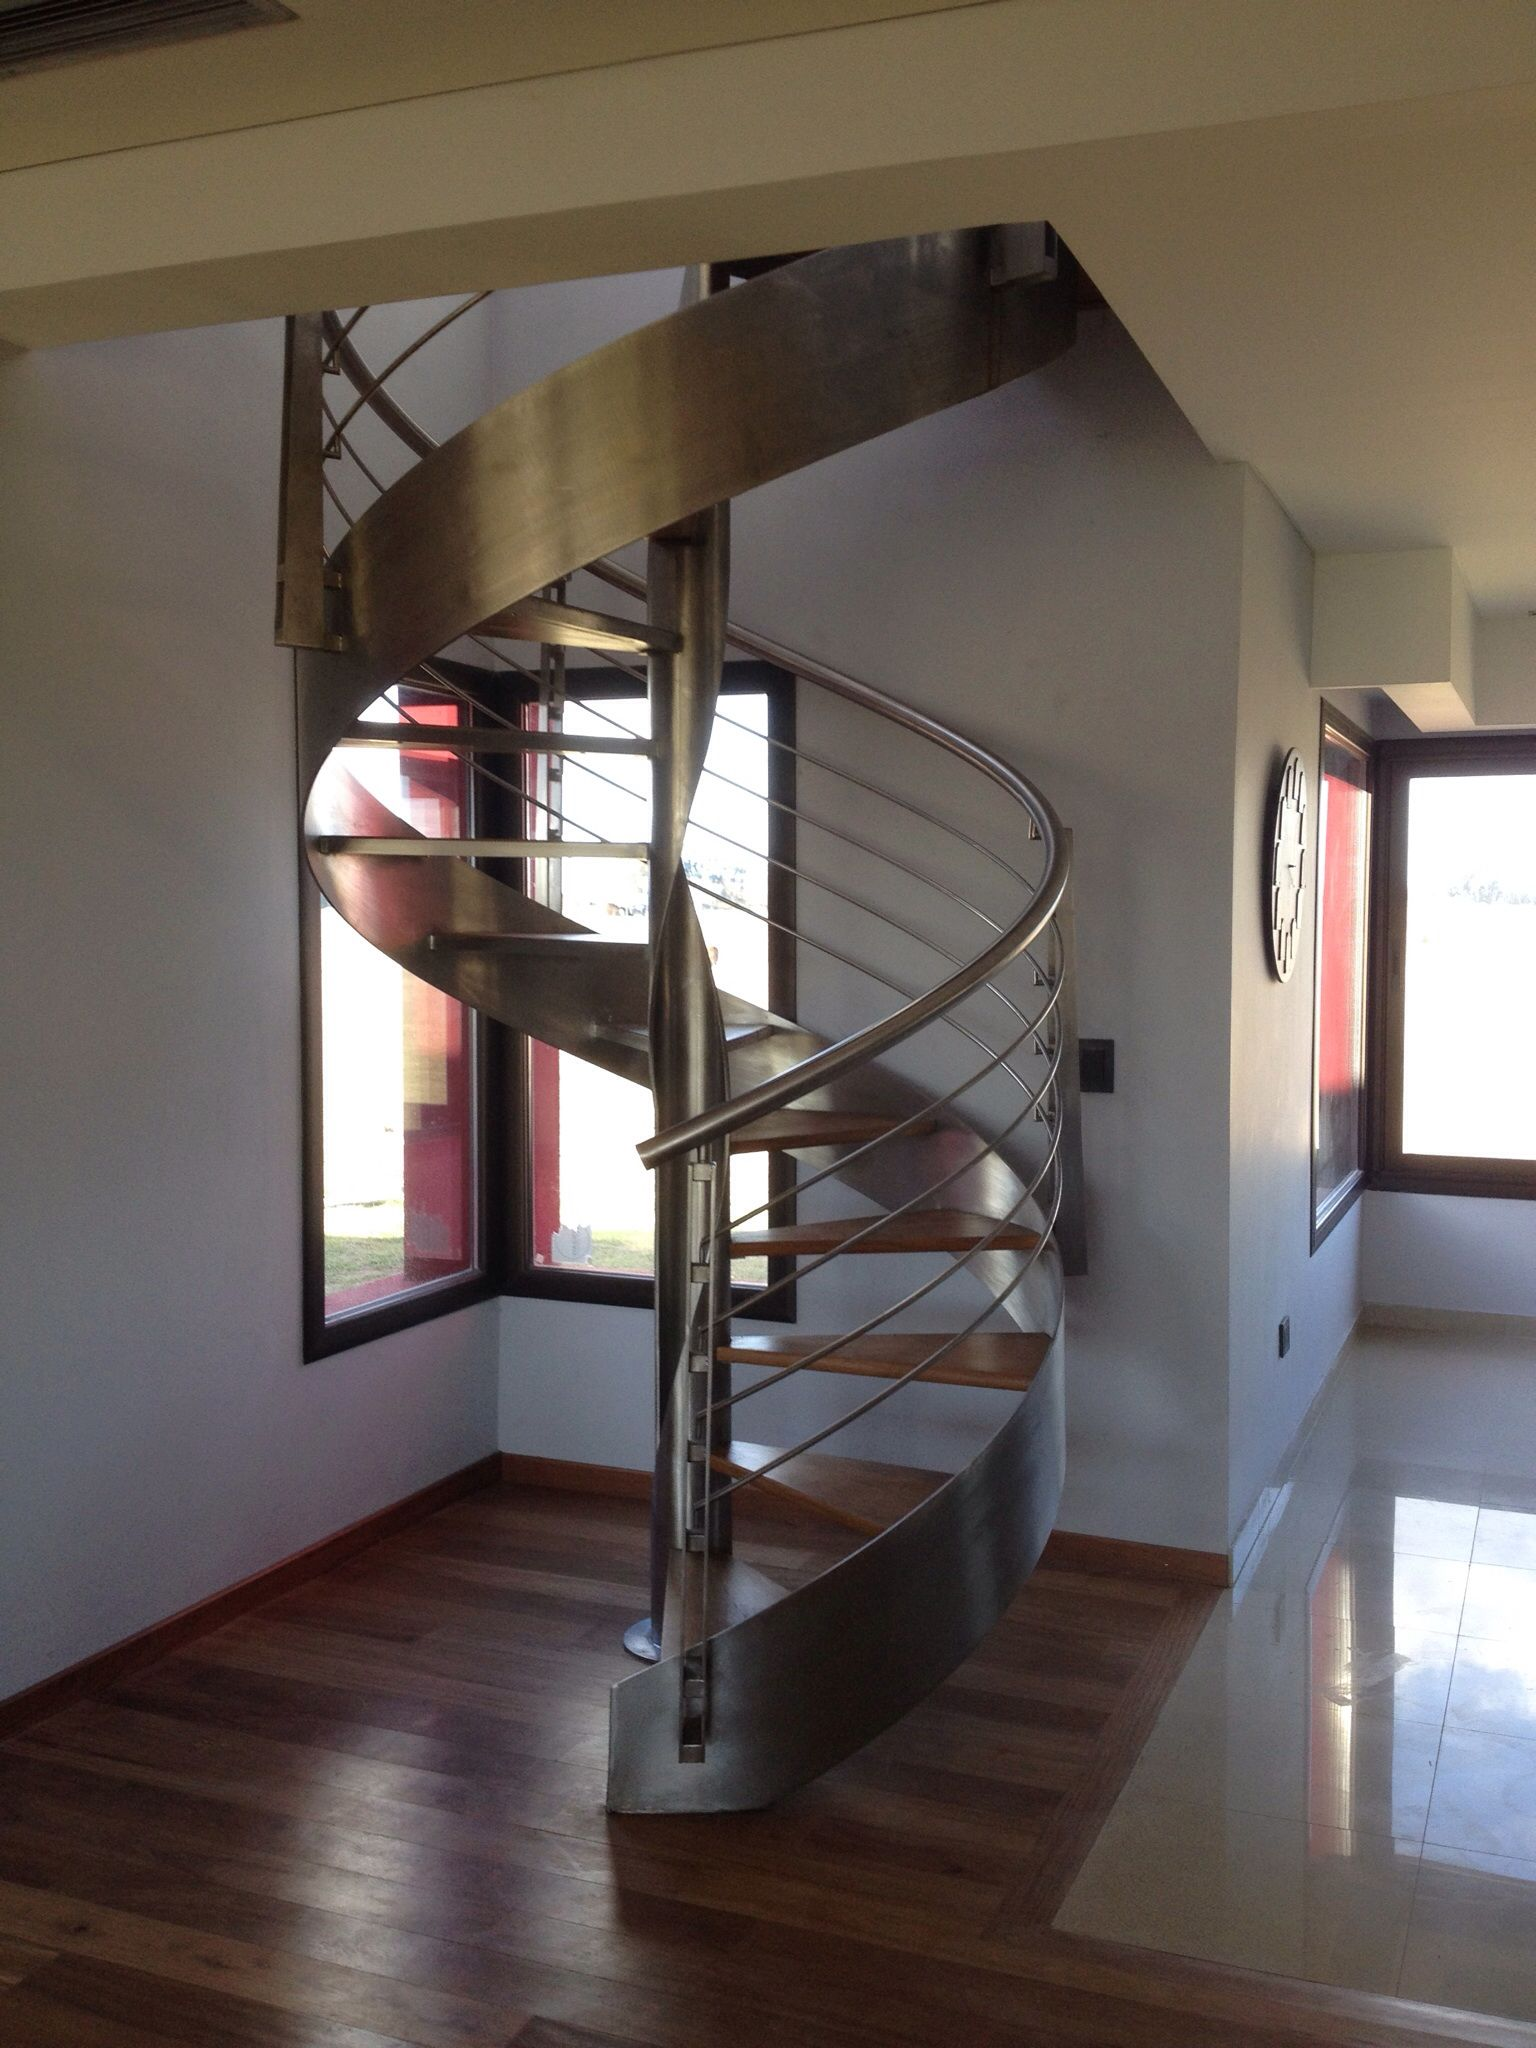 Escalera caracol moderna acero inoxidable escaleras for Escalera caracol 2 pisos